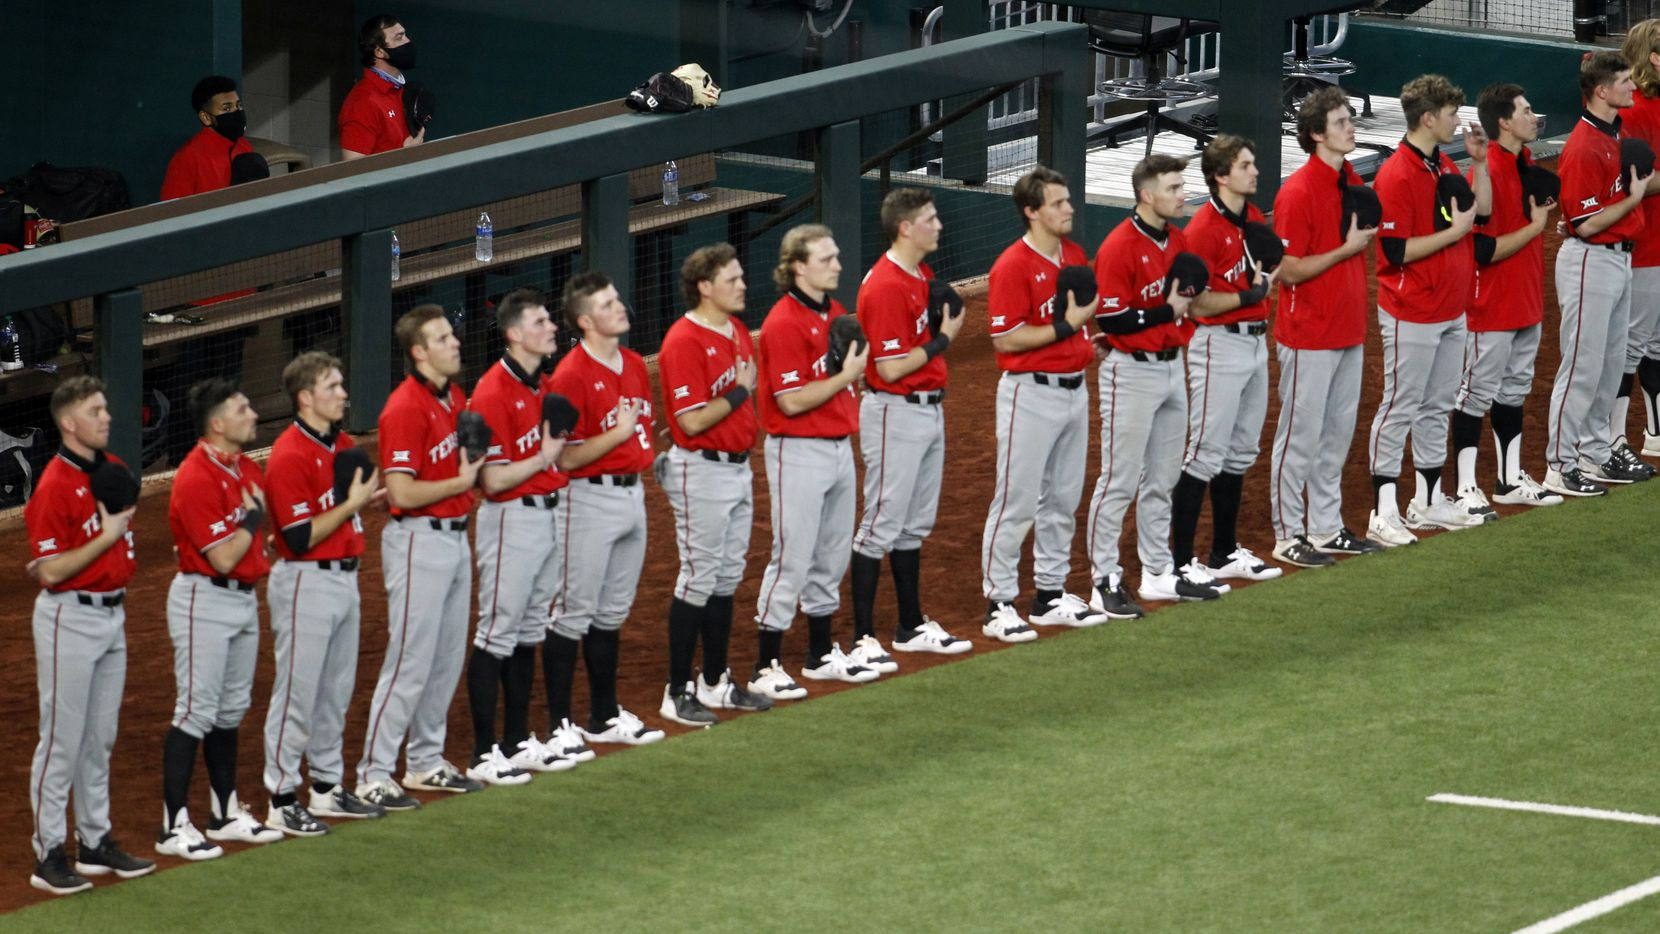 Members of the Texas Tech Red Raiders baseball team pause for the playing of the national anthem prior to the start of their game against Ole Miss. Texas Tech played Ole Miss in conjunction with the State Farm College Baseball Showdown tournament held at Globe Life Field in Arlington on February 21, 2021. (Steve Hamm/ Special Contributor)